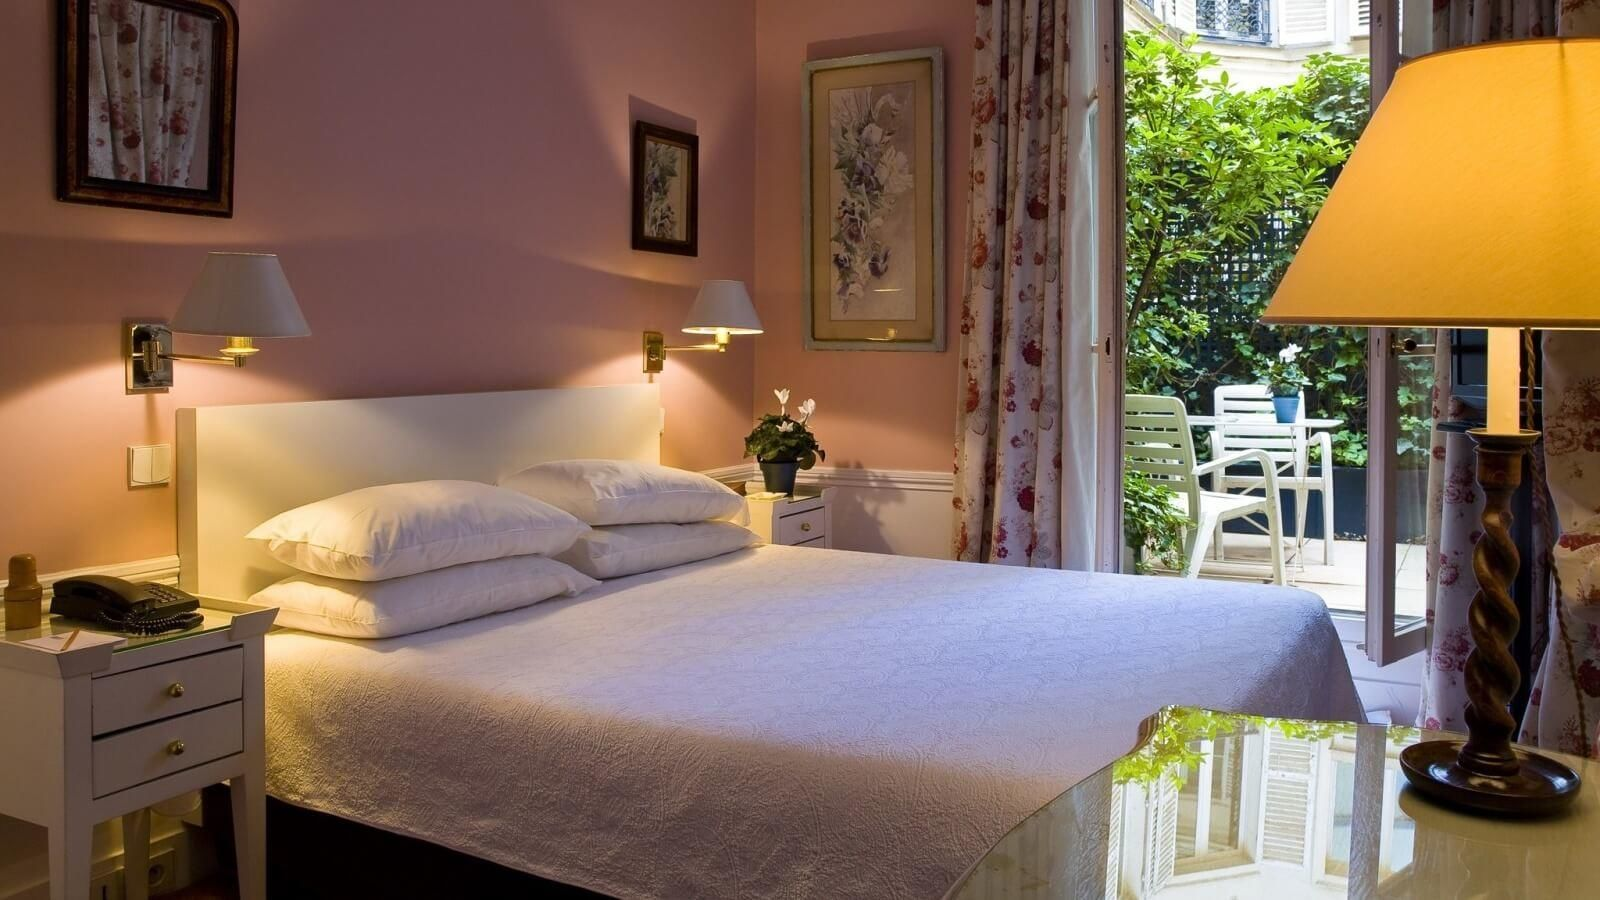 H tel le saint gr goire paris site officiel for Site hotel de luxe